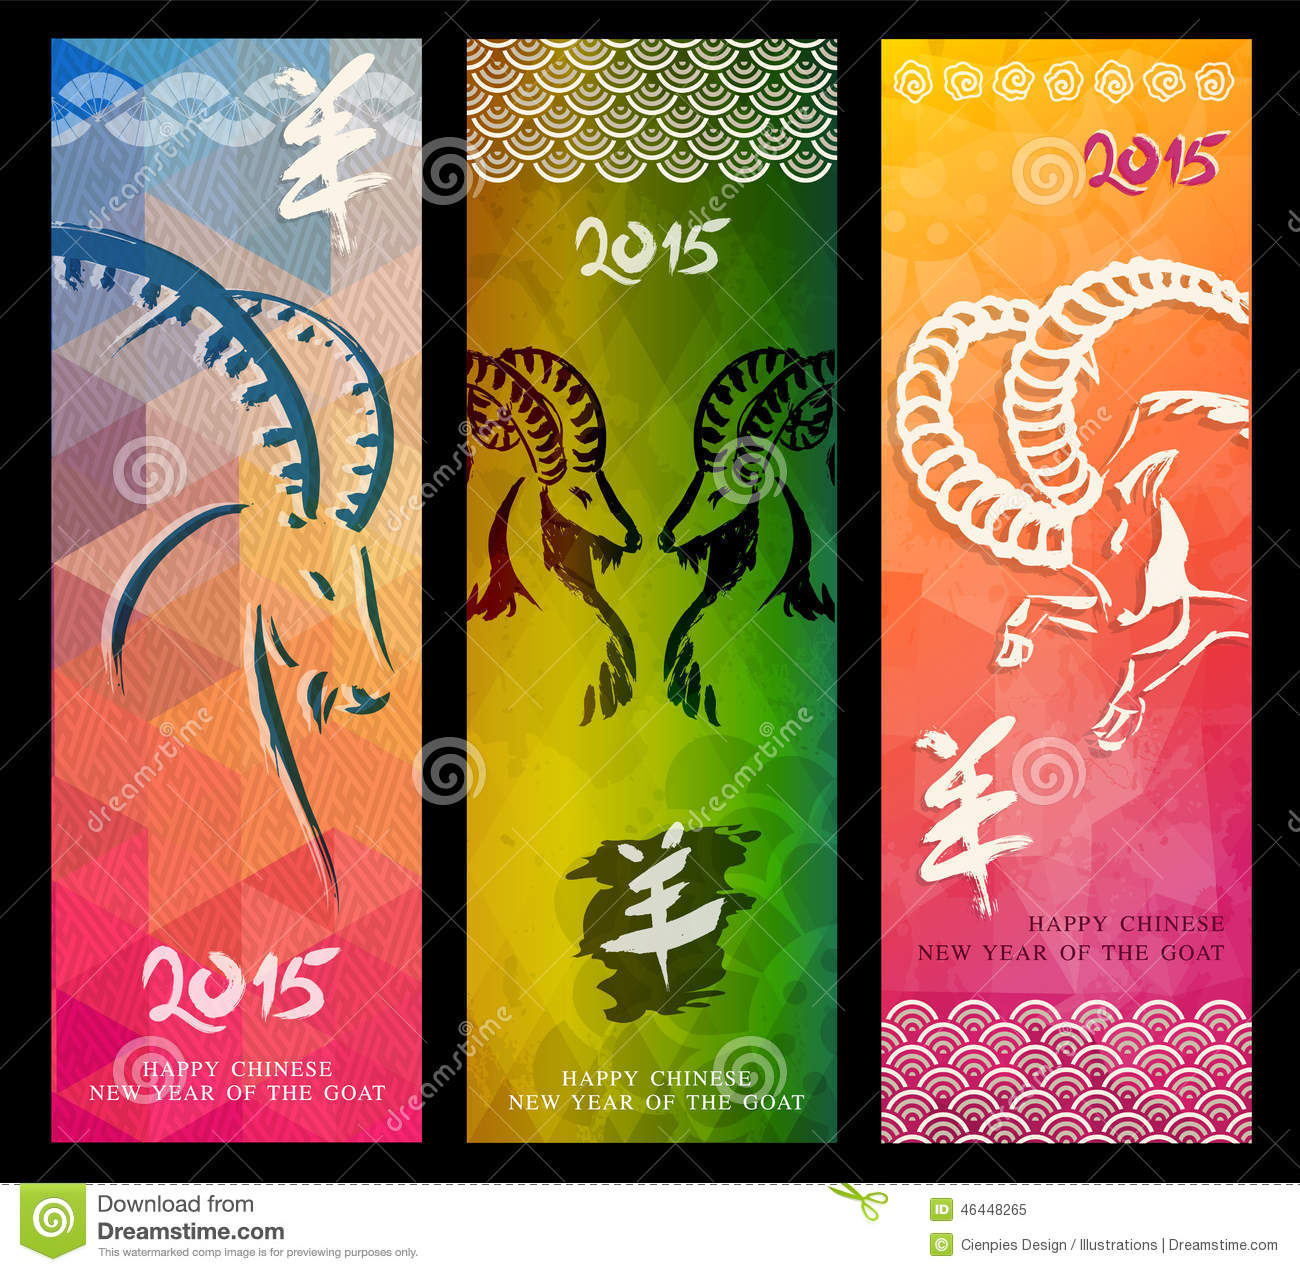 Chinese new year of the goat 2015 colorful banner set stock vector download chinese new year of the goat 2015 colorful banner set stock vector illustration of m4hsunfo